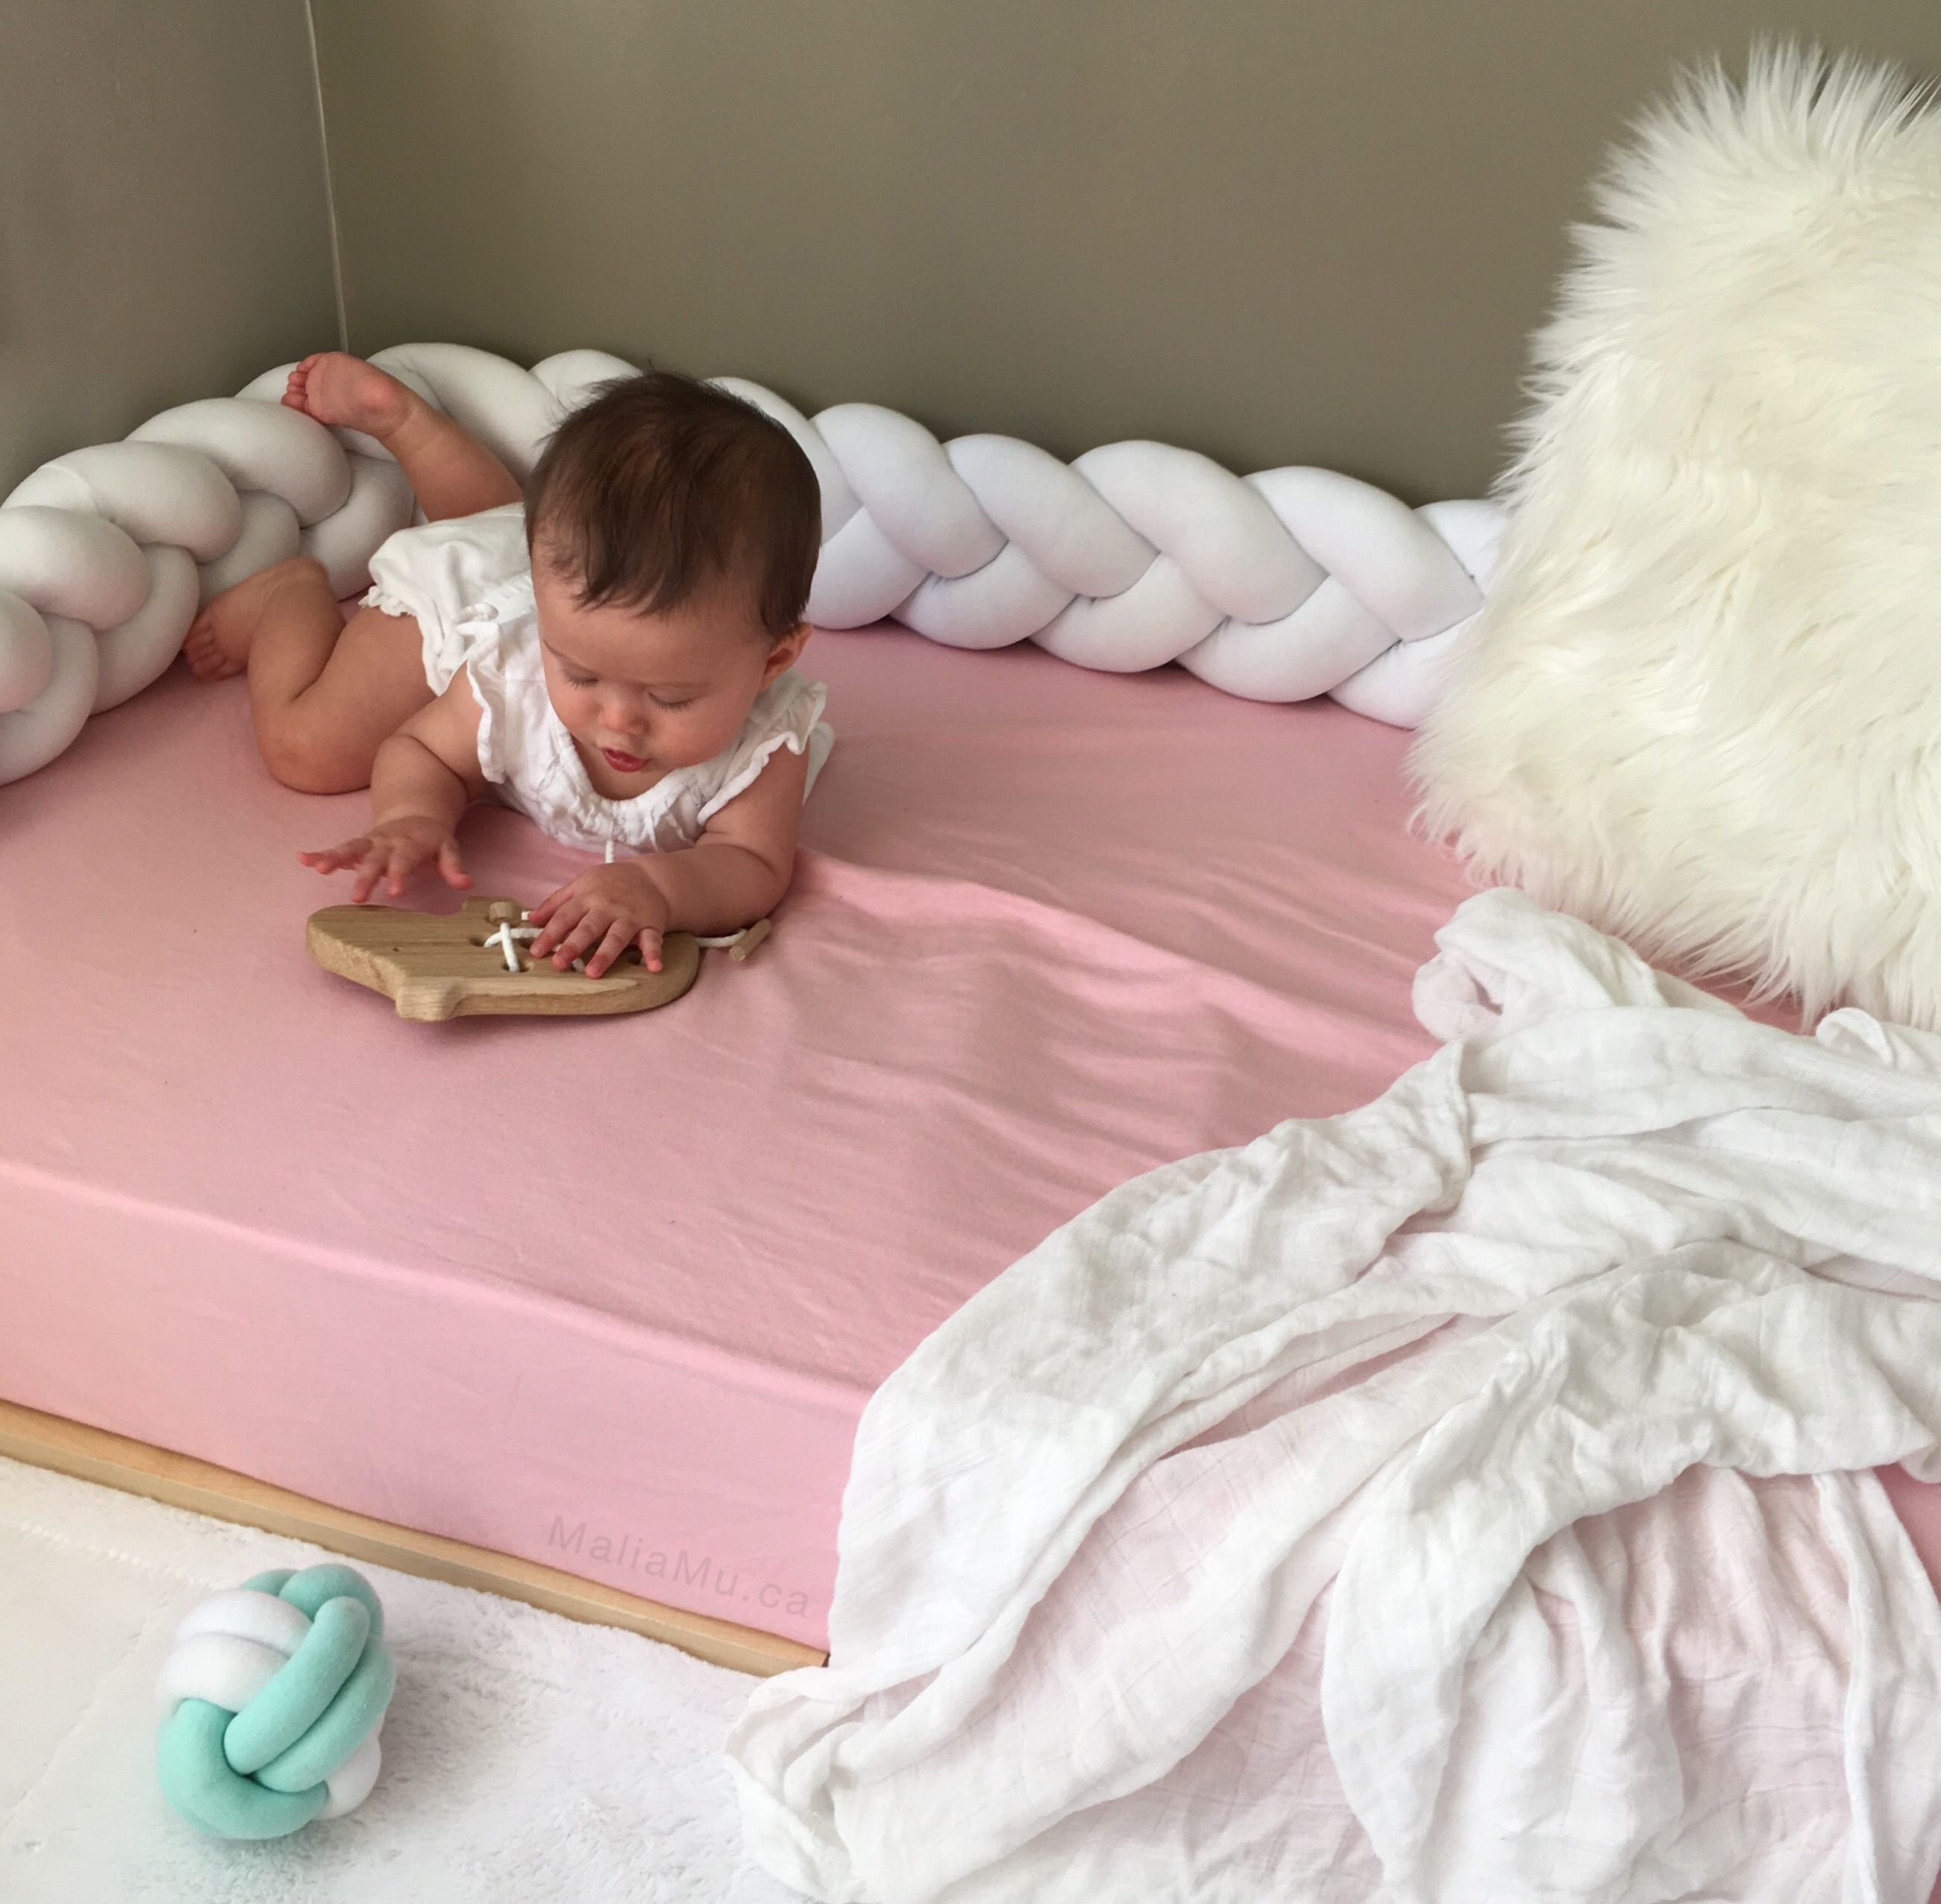 dee4d54aeae2813453062bbd15f15c58 - 17 Ideas To Organize Your Own Baby Floor Cushion